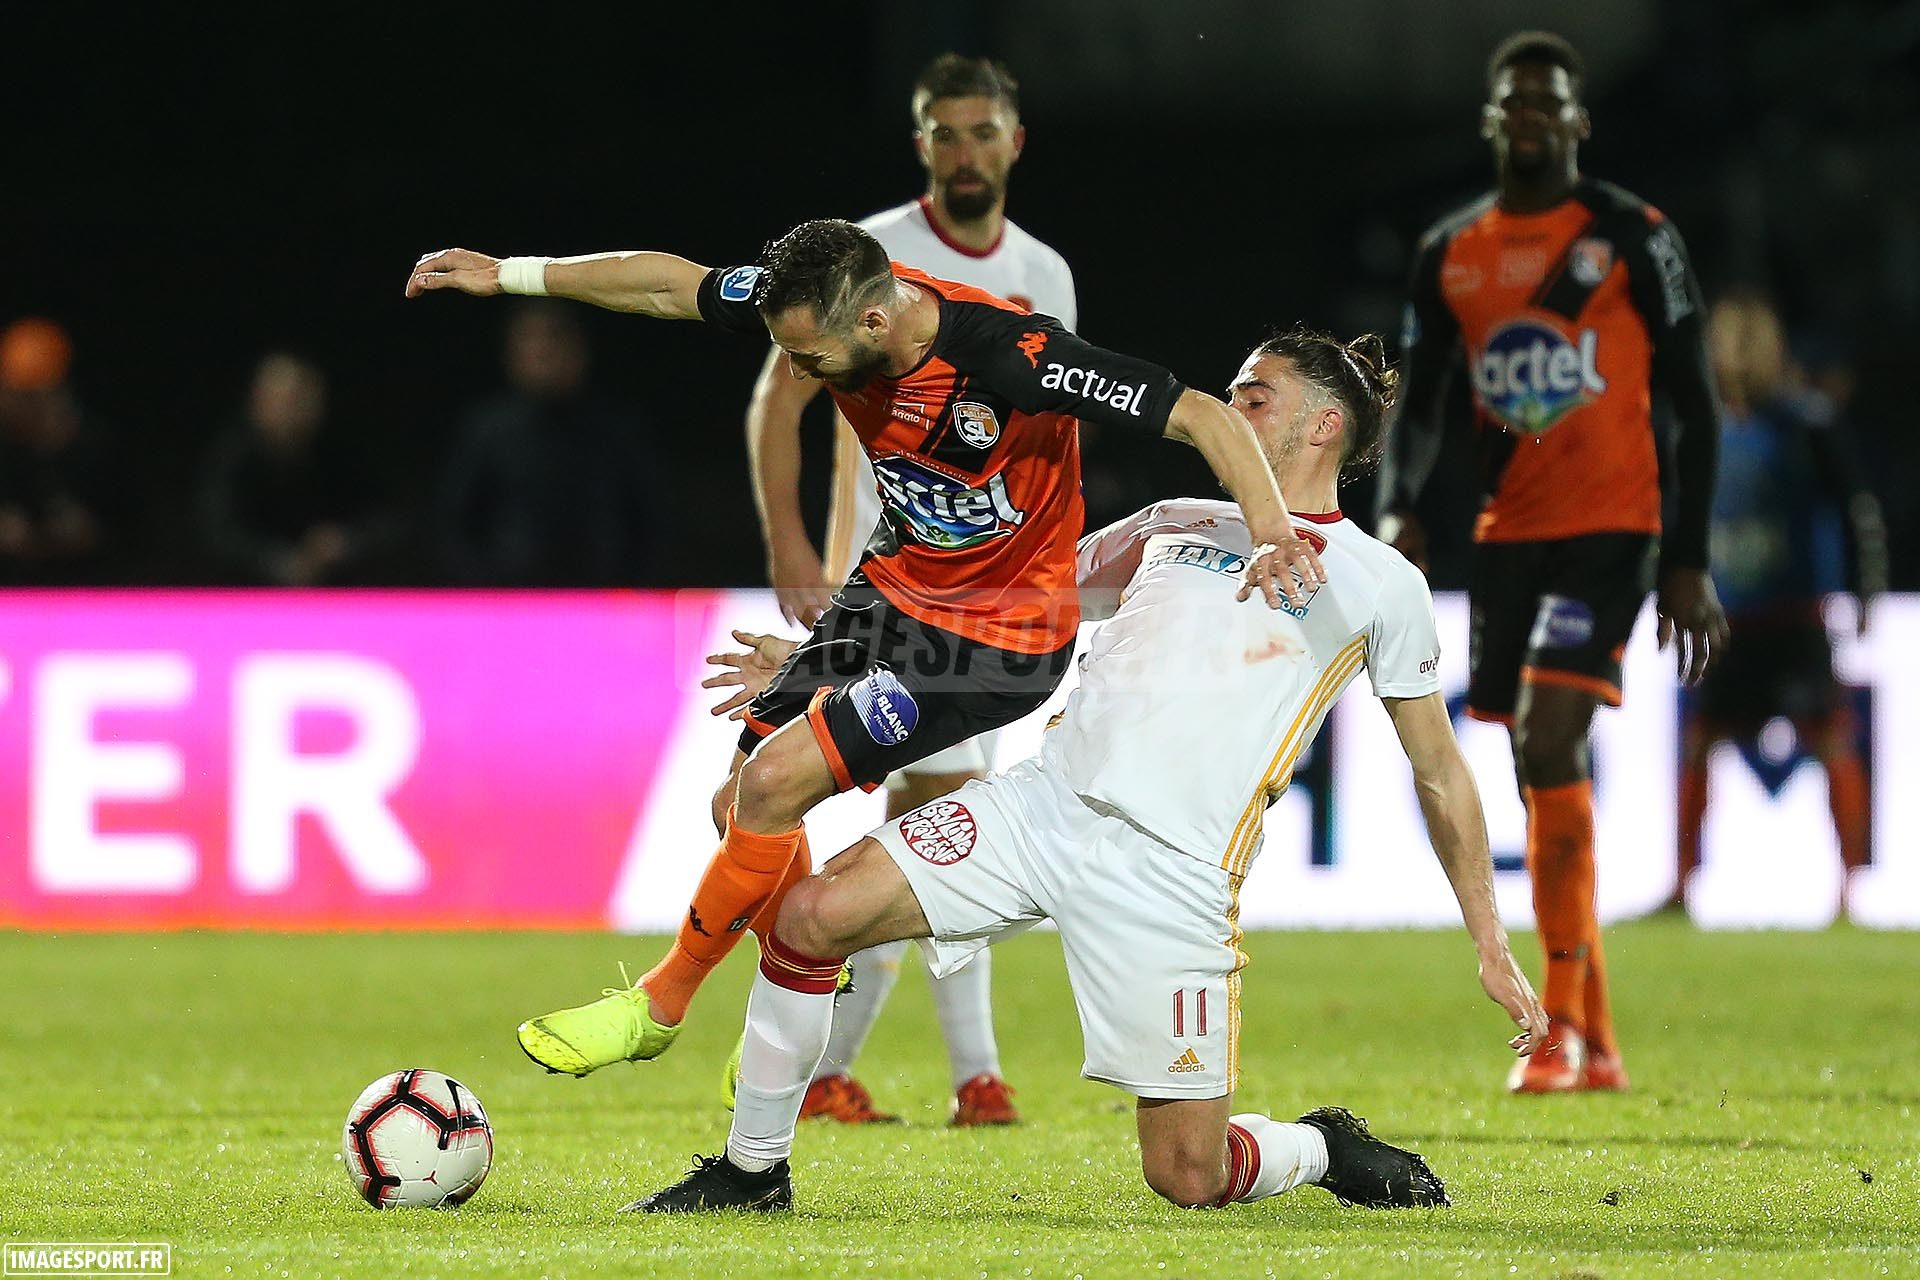 18-19-national-laval-rodez_36